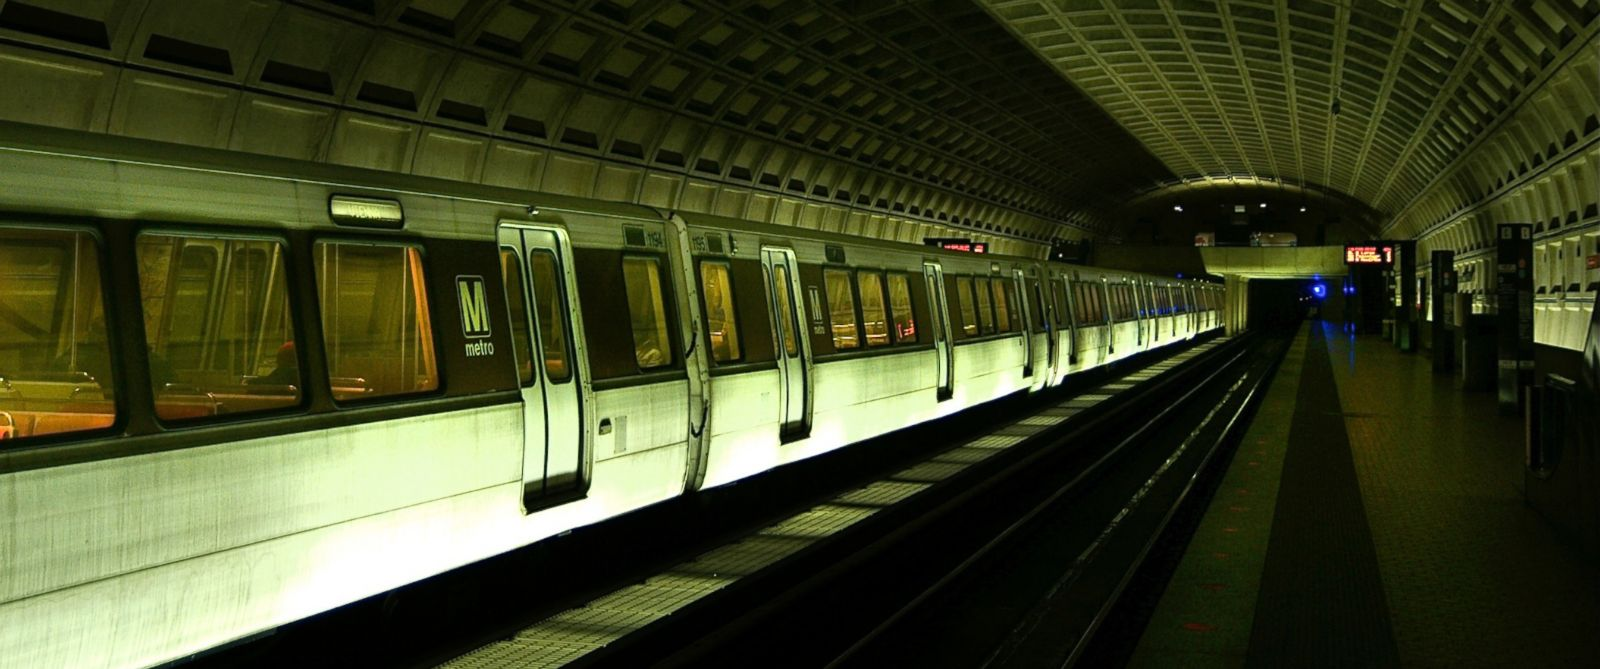 PHOTO: Washington DC metro train in an underground station is pictured in this undated photo.